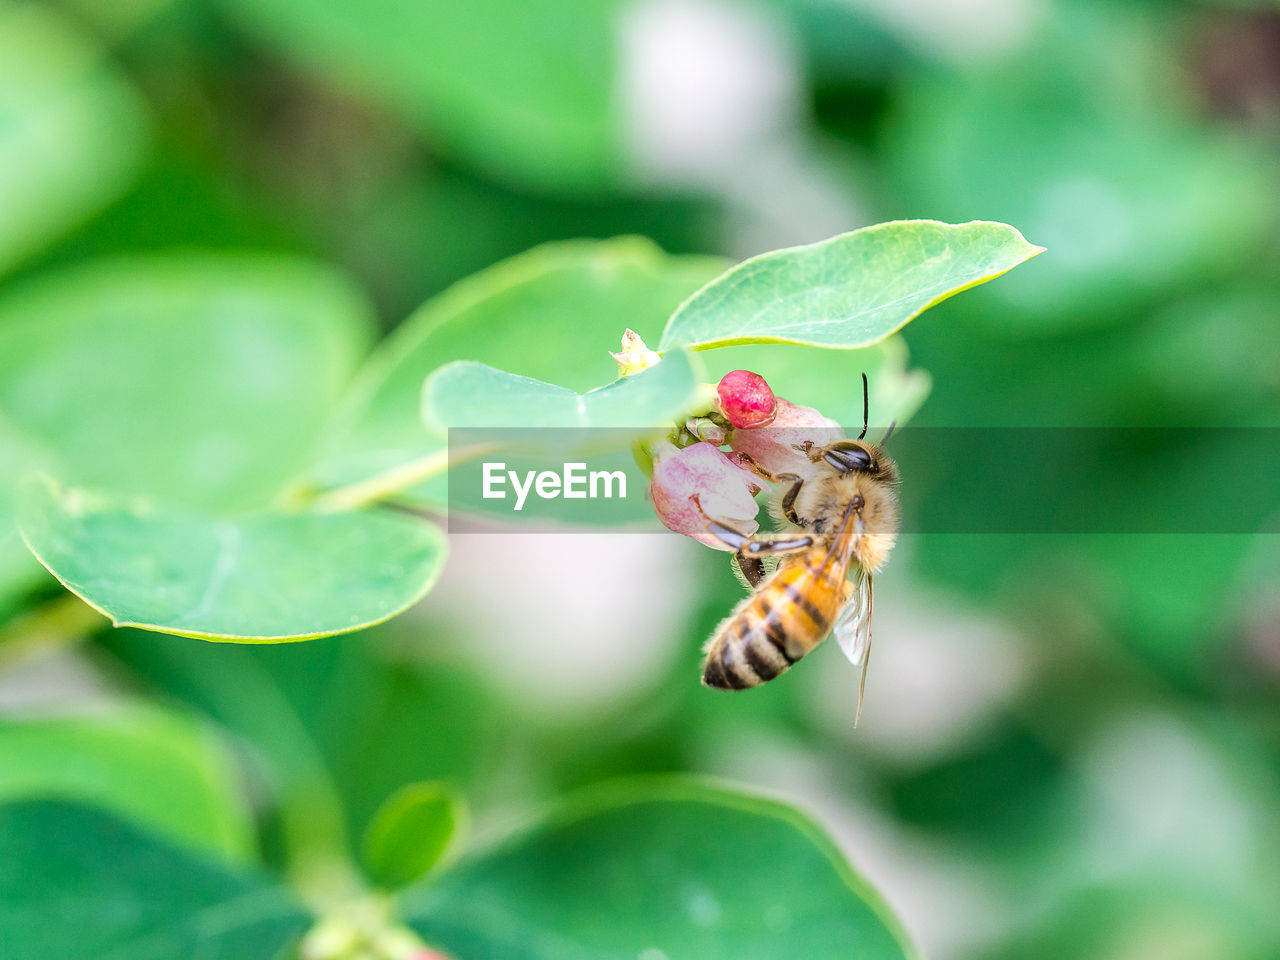 invertebrate, insect, animals in the wild, animal wildlife, plant part, leaf, animal themes, animal, plant, close-up, one animal, green color, beauty in nature, no people, nature, focus on foreground, day, growth, flower, selective focus, animal wing, outdoors, pollination, flower head